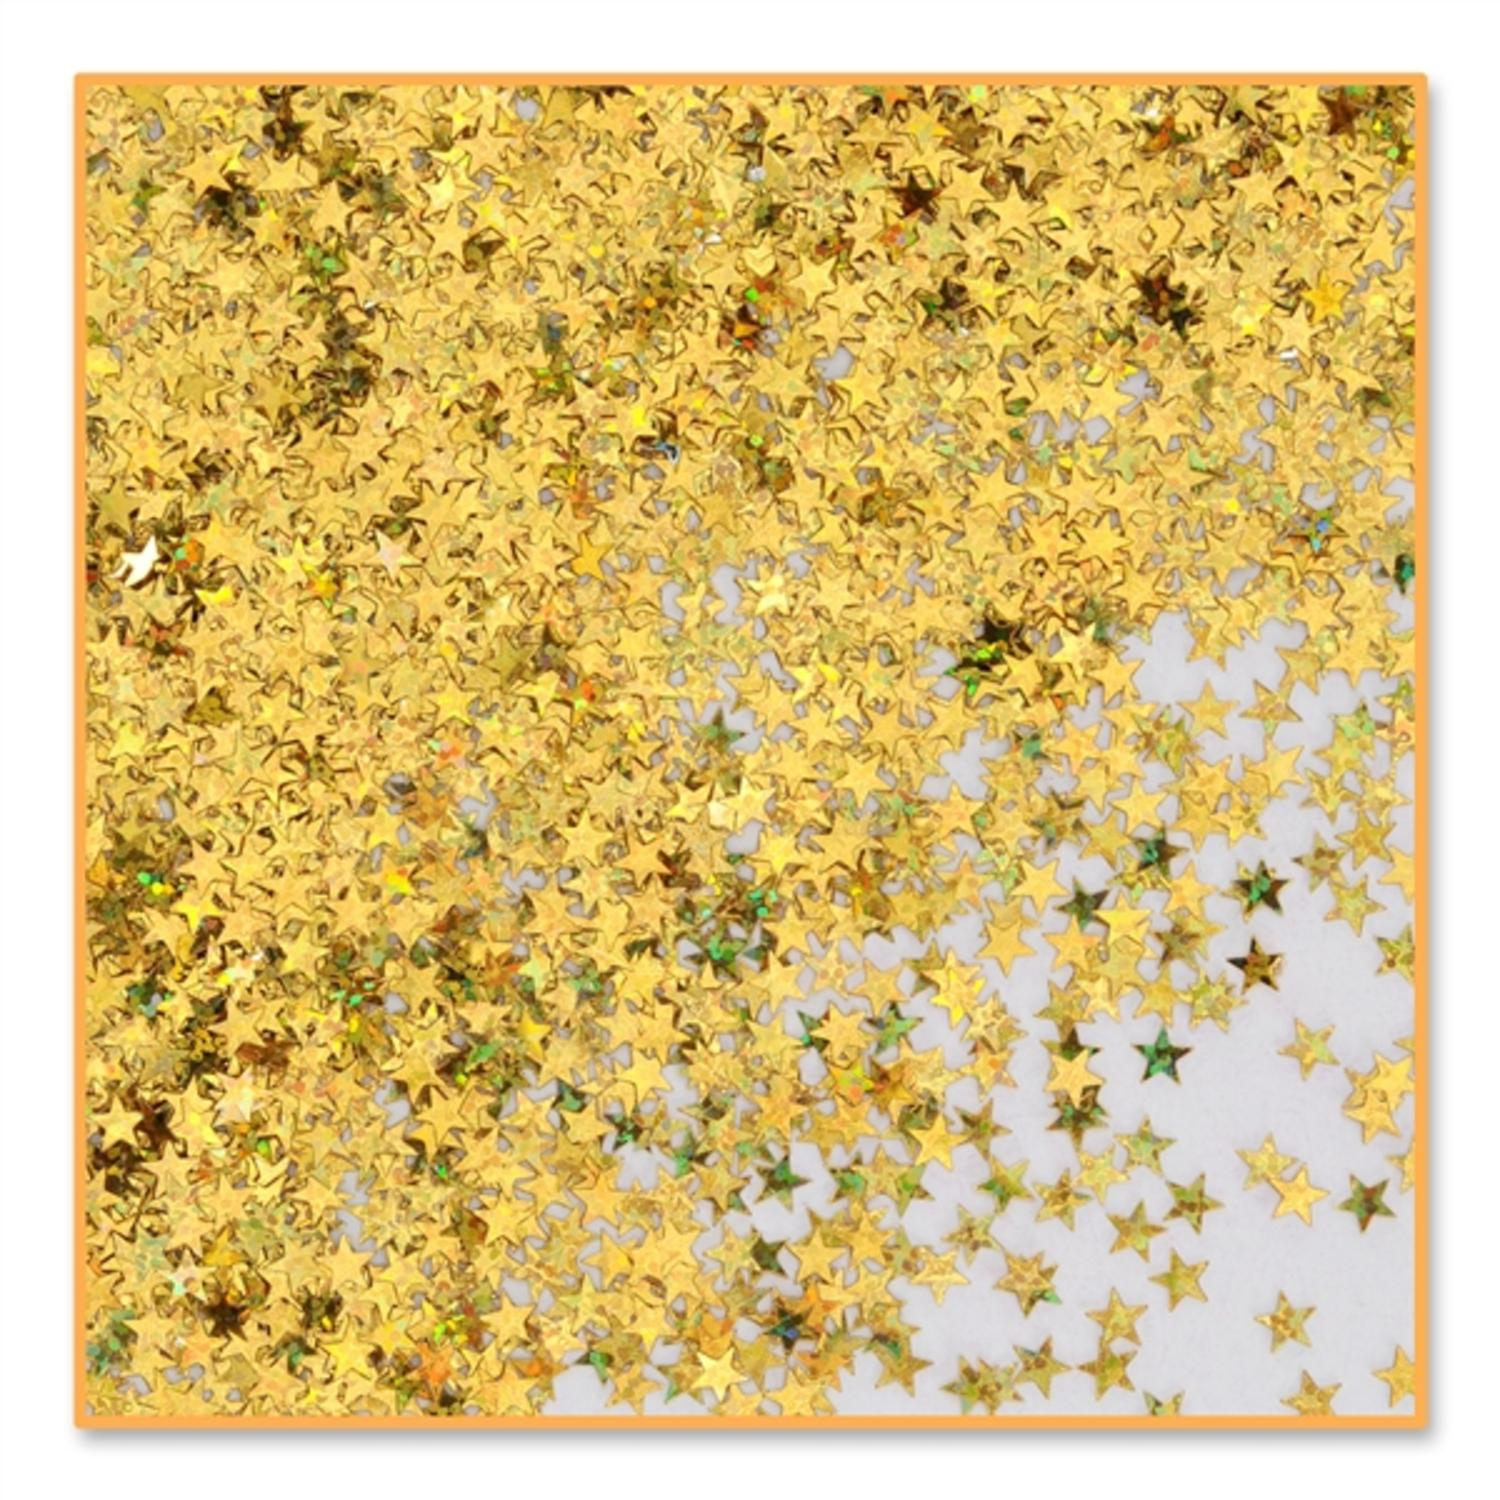 Pack of 6 Metallic Gold Holographic Star Celebration Confetti Bags 0.5 oz.